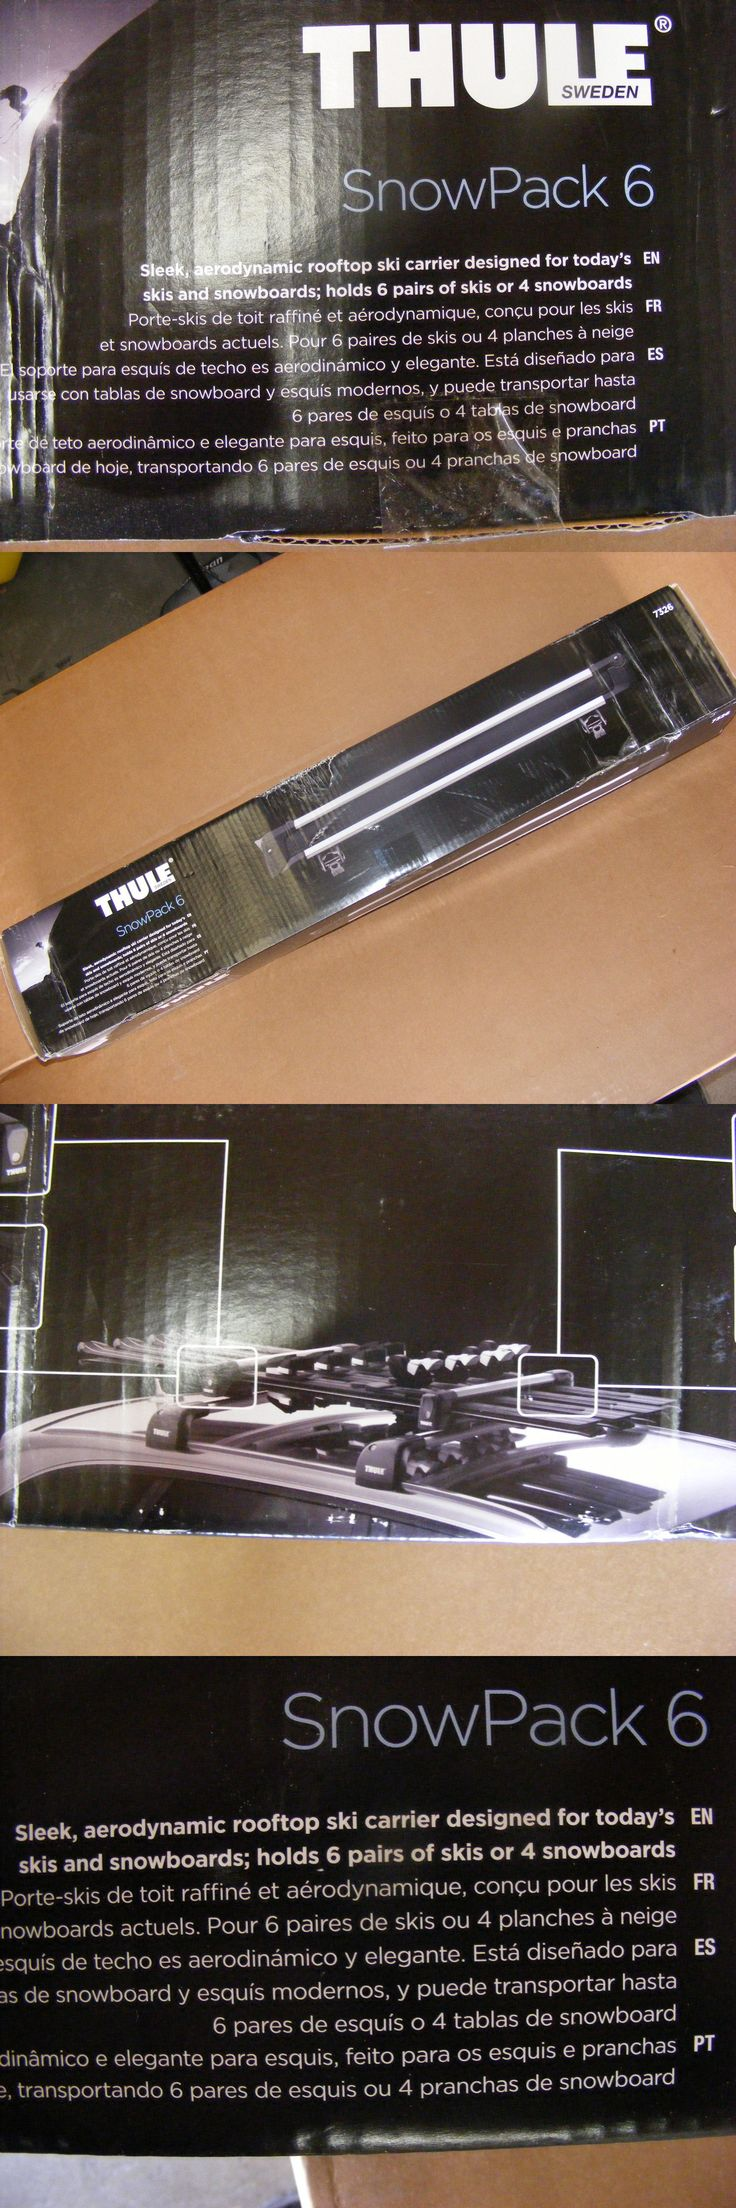 Racks and Carriers 21231: New In Package ,Thule Snowpack 6, # 7326, Car Rooftop Ski Snowboard Carrier -> BUY IT NOW ONLY: $159 on eBay!